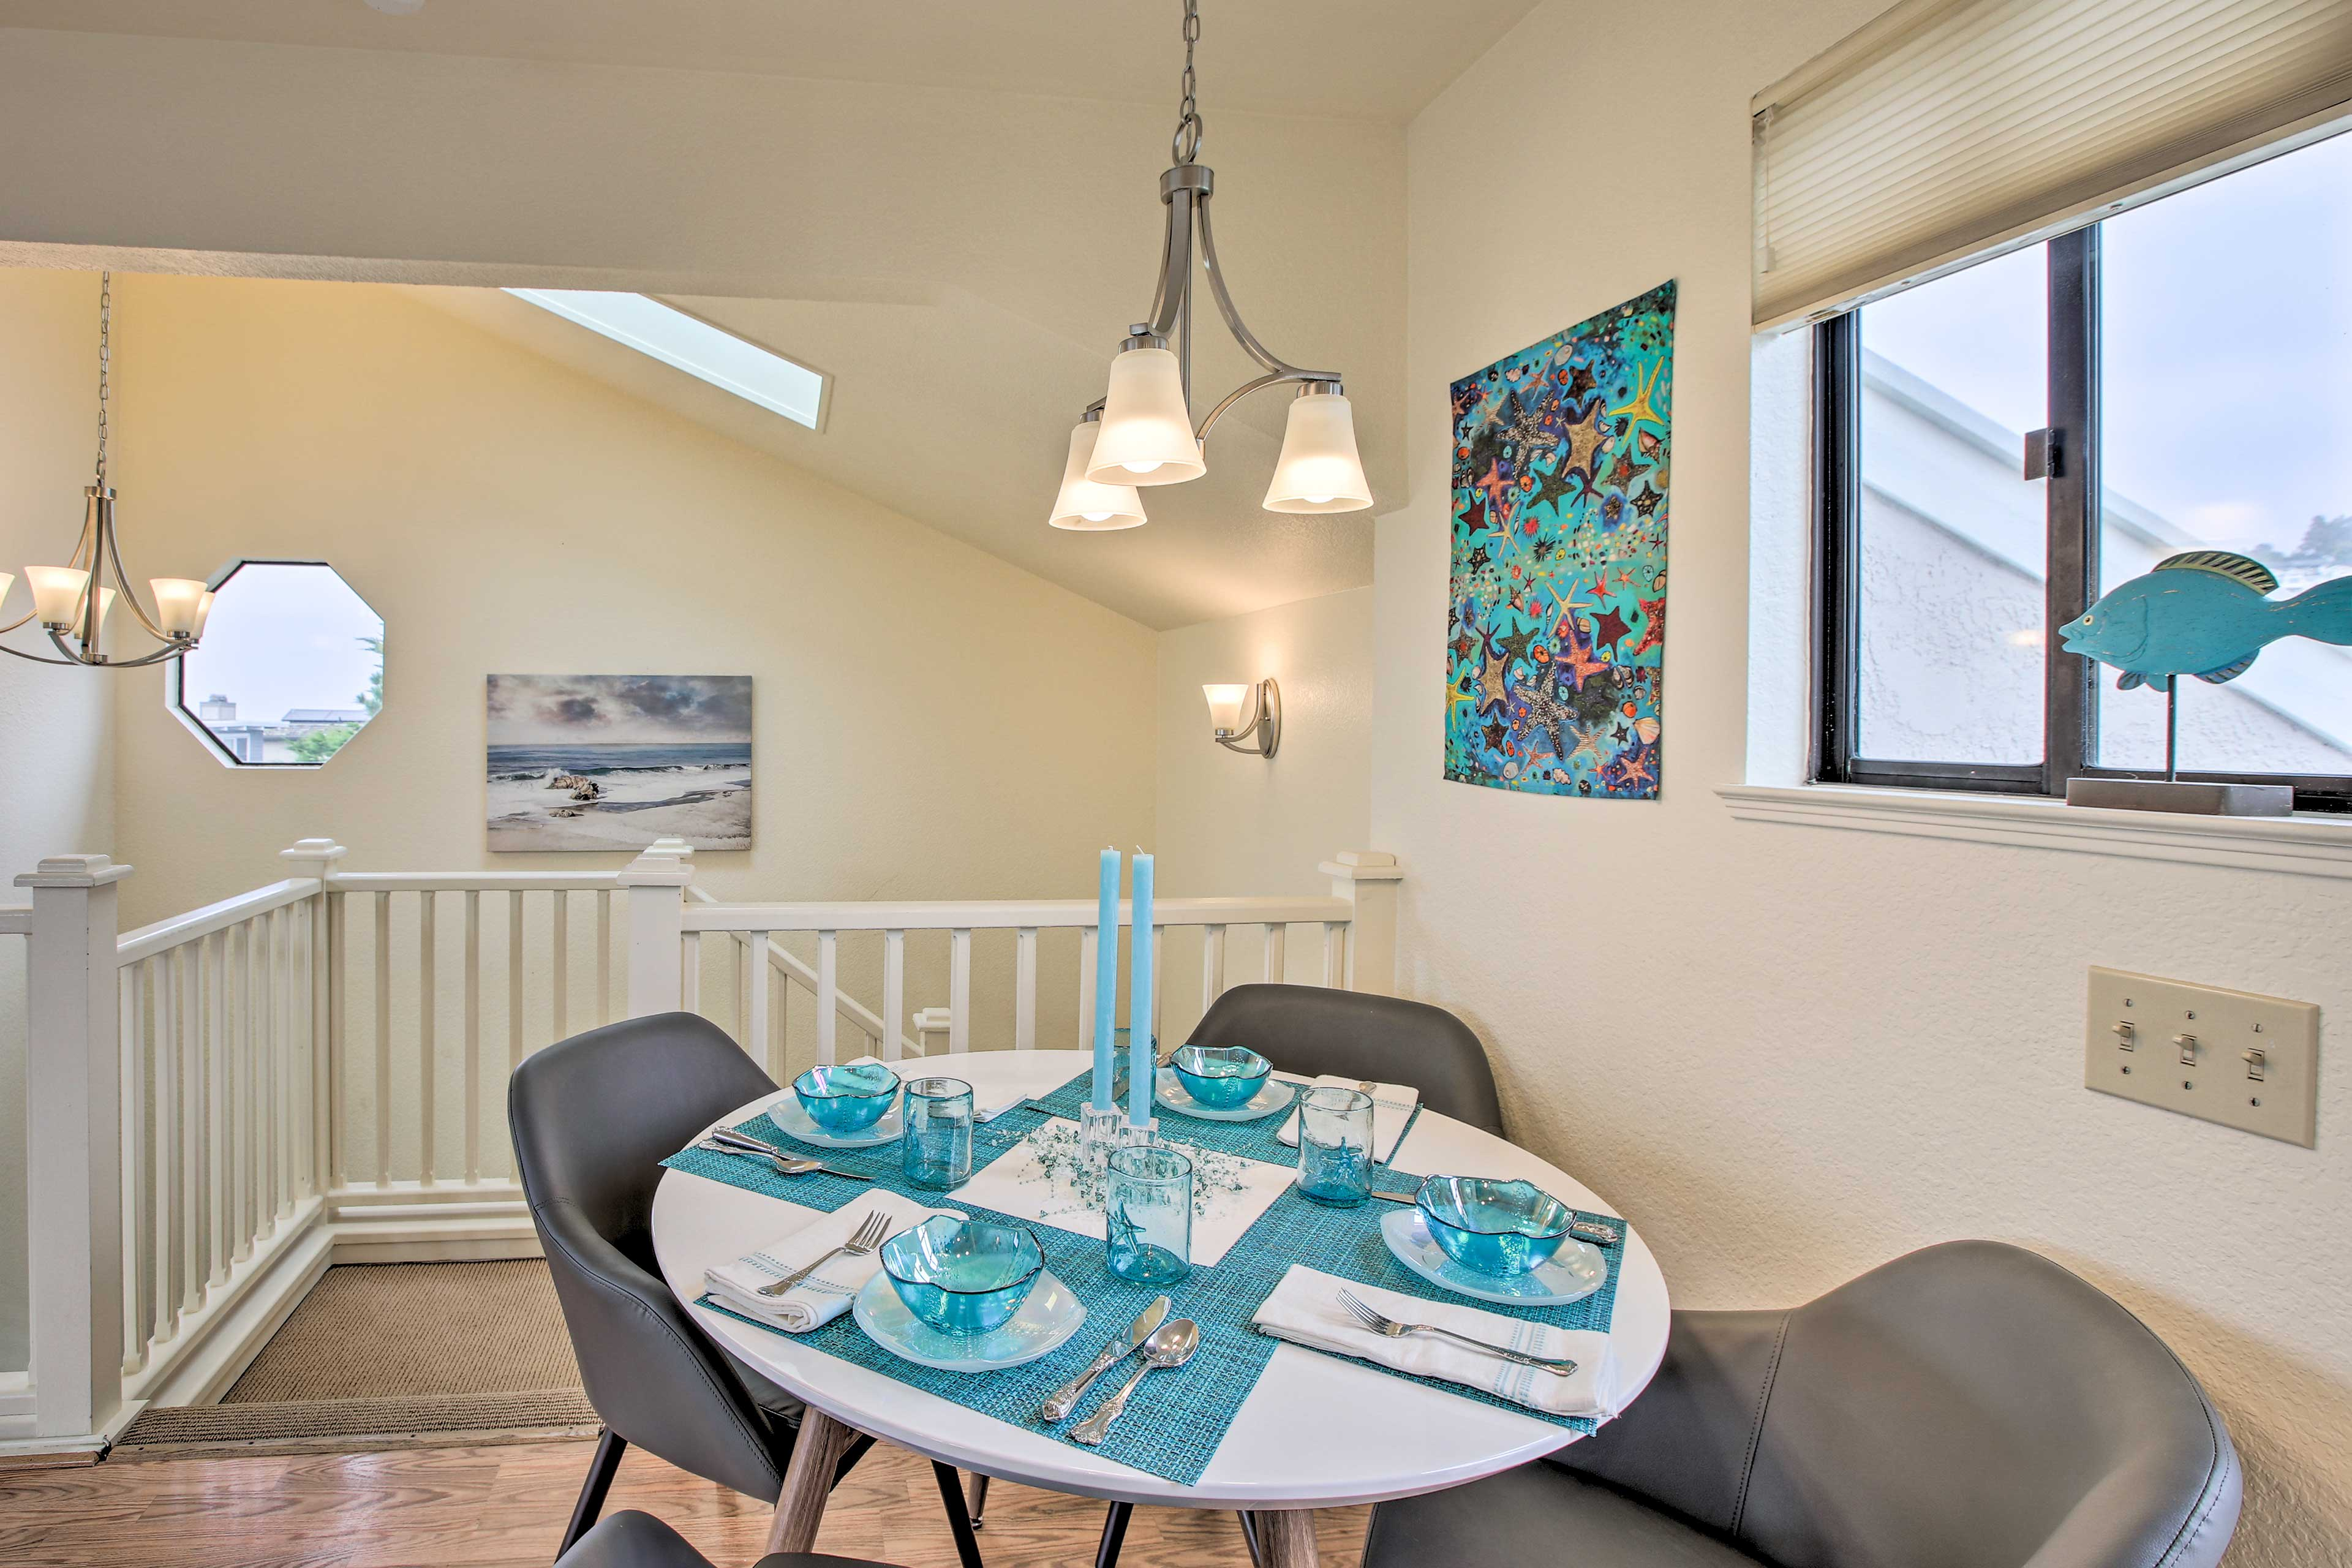 Enjoy home-cooked meals around the formal dining table.